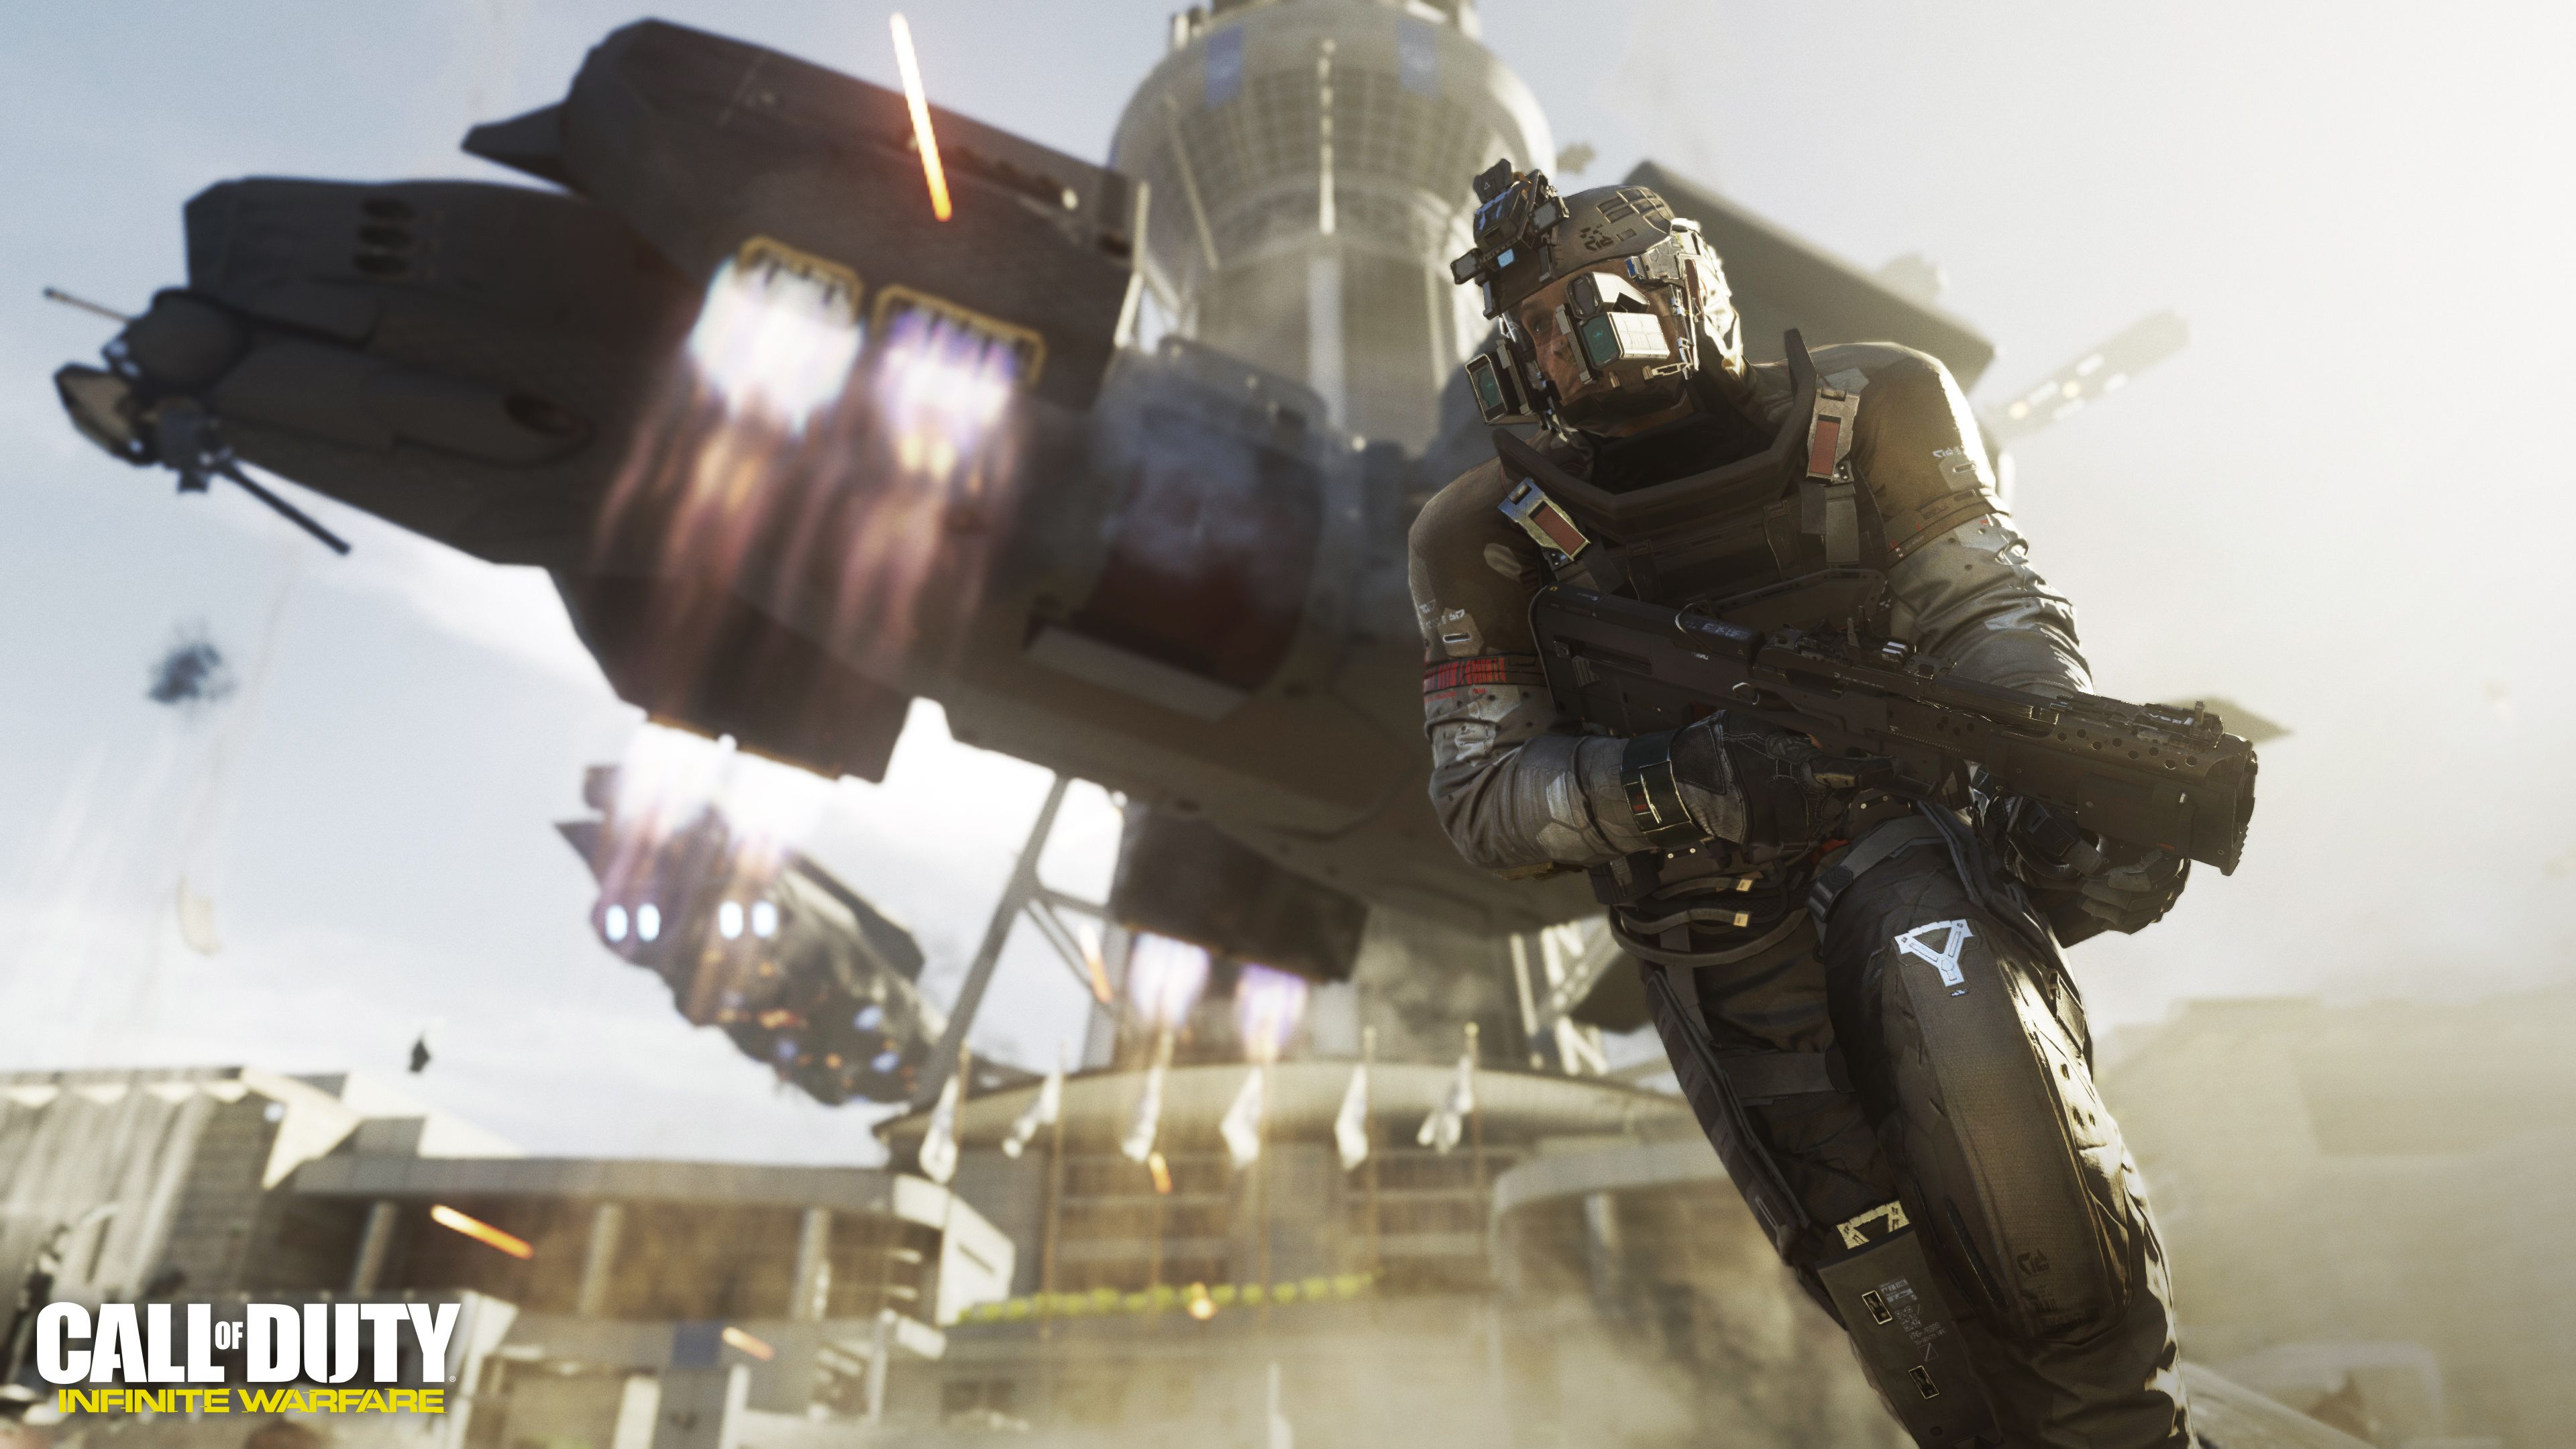 Infinity Ward reaches new heights with Call of Duty Infinite Warfare which returns to the roots of the franchise with largescale war epic battles and cinematic